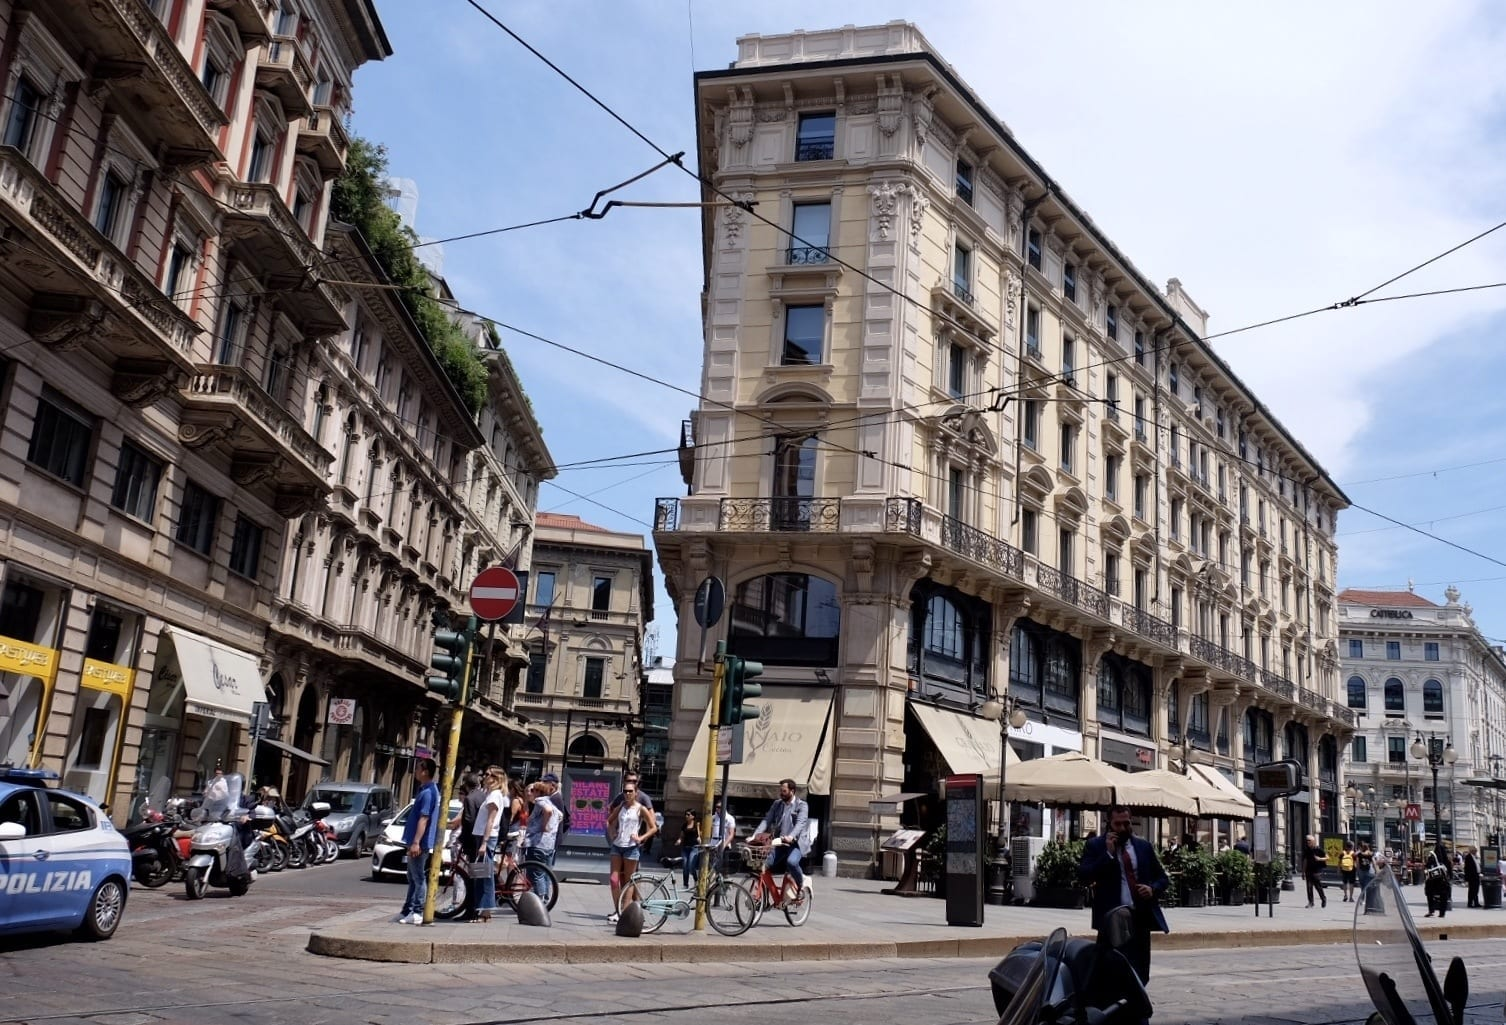 Milan street scene: On a block that juts out triangularly into the street, several people wait for the walk signal at a stoplight. The surrounding buildings are gray with ornate balconies for each window. On the ground floor is a cafe with white awnings.